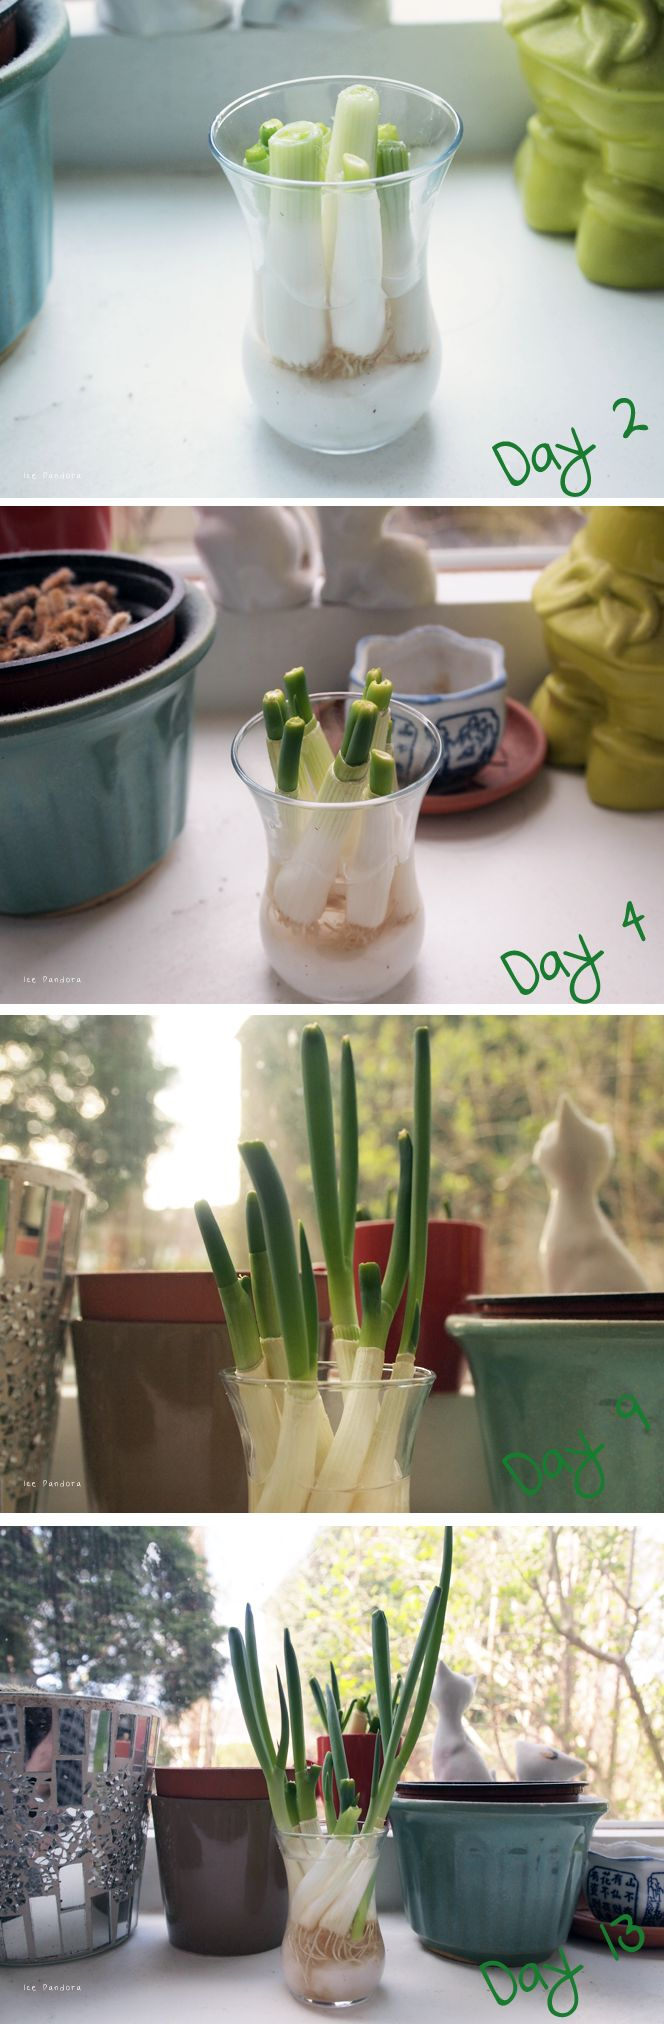 Growing spring onions at home: http://www.icepandora.blogspot.nl/2013/05/diy-growing-easy-spring-onions.html